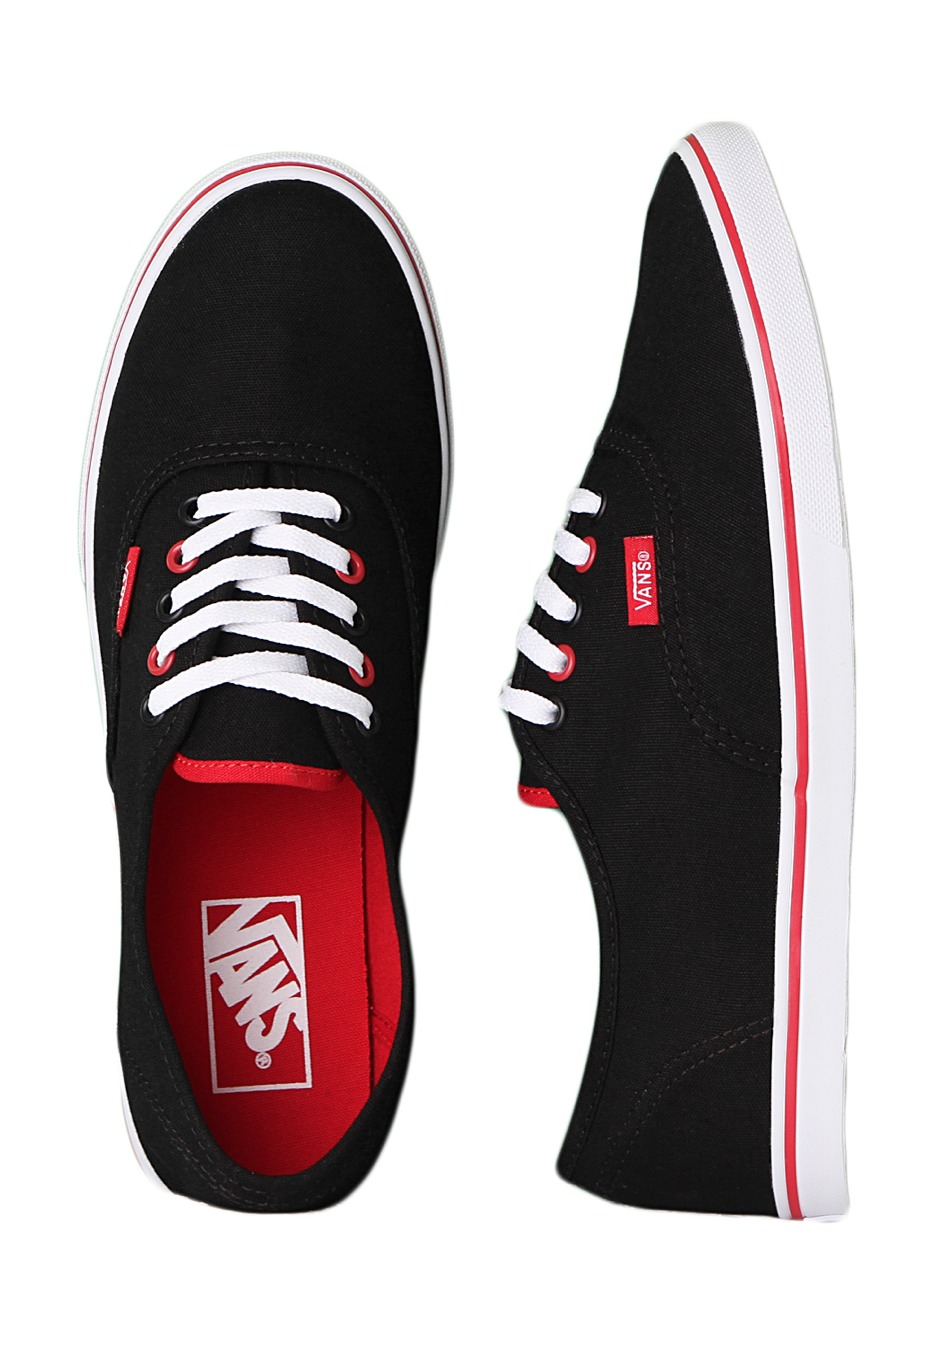 ea887f3f5d2764 Vans - Authentic Lo Pro Black True Red - Girl Shoes - Impericon.com  Worldwide